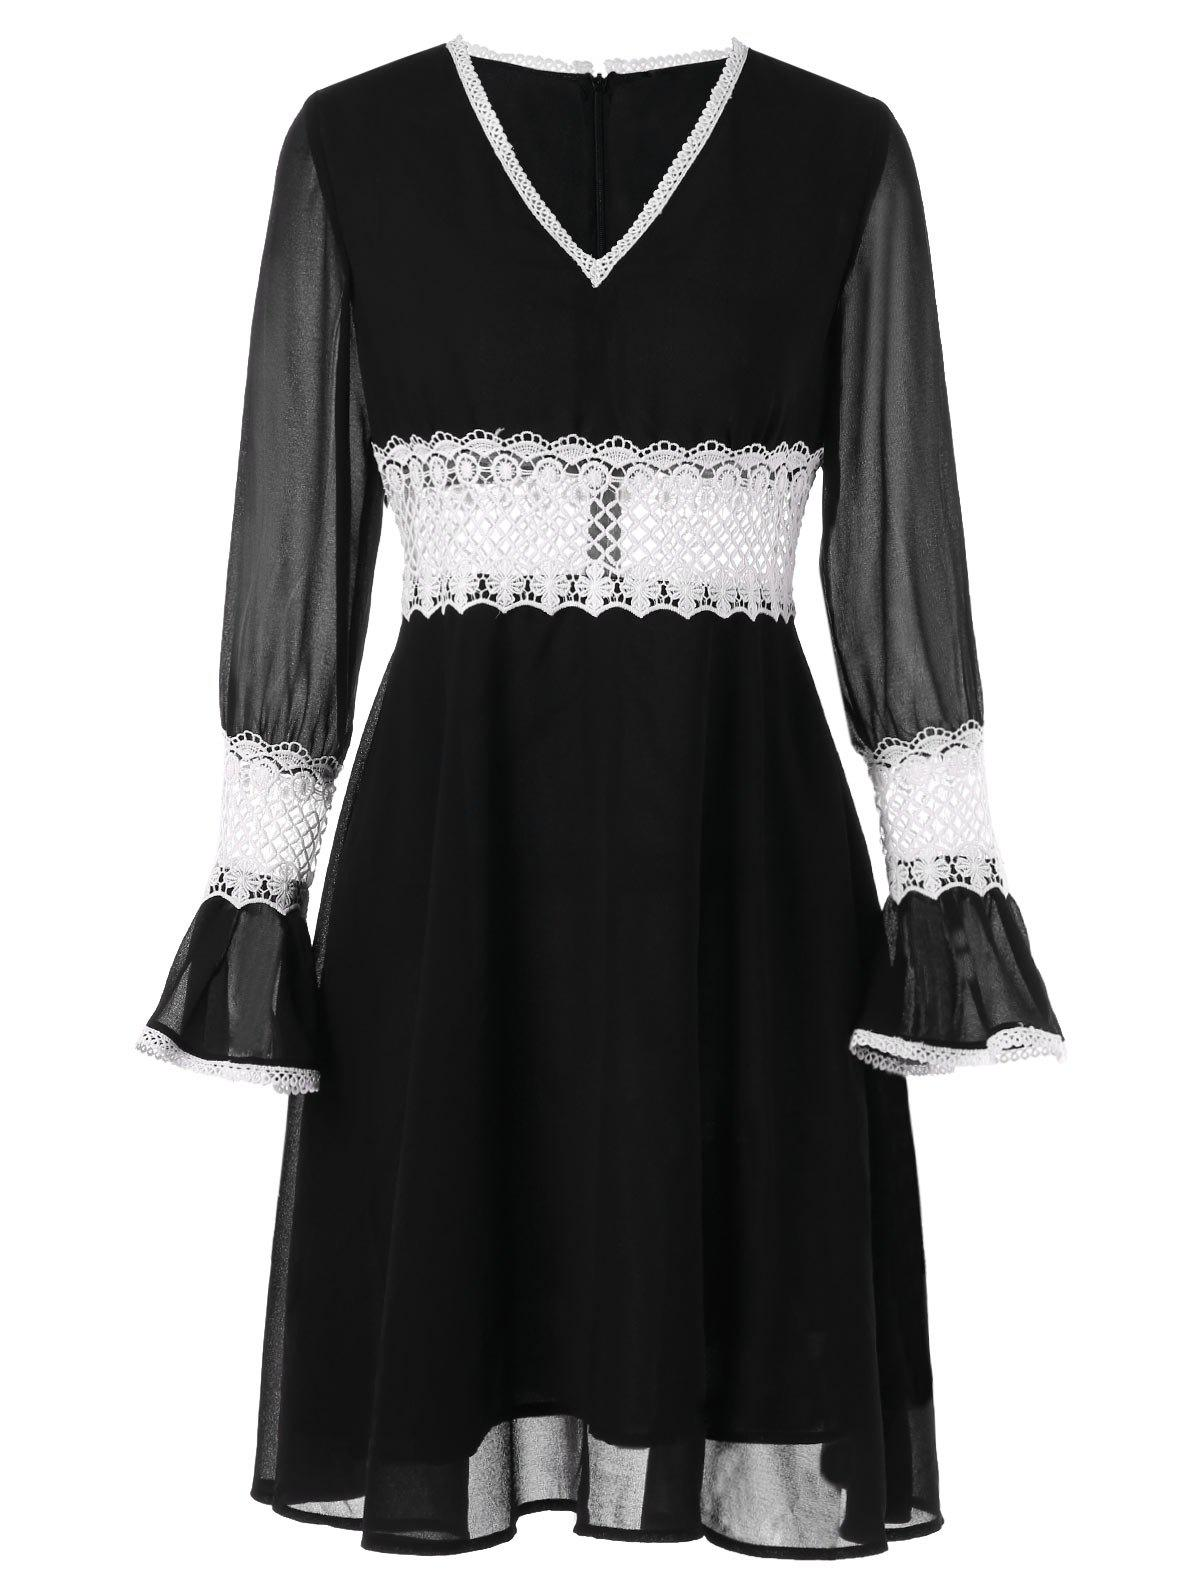 Sale Contrast Lace Chiffon High Waist Dress